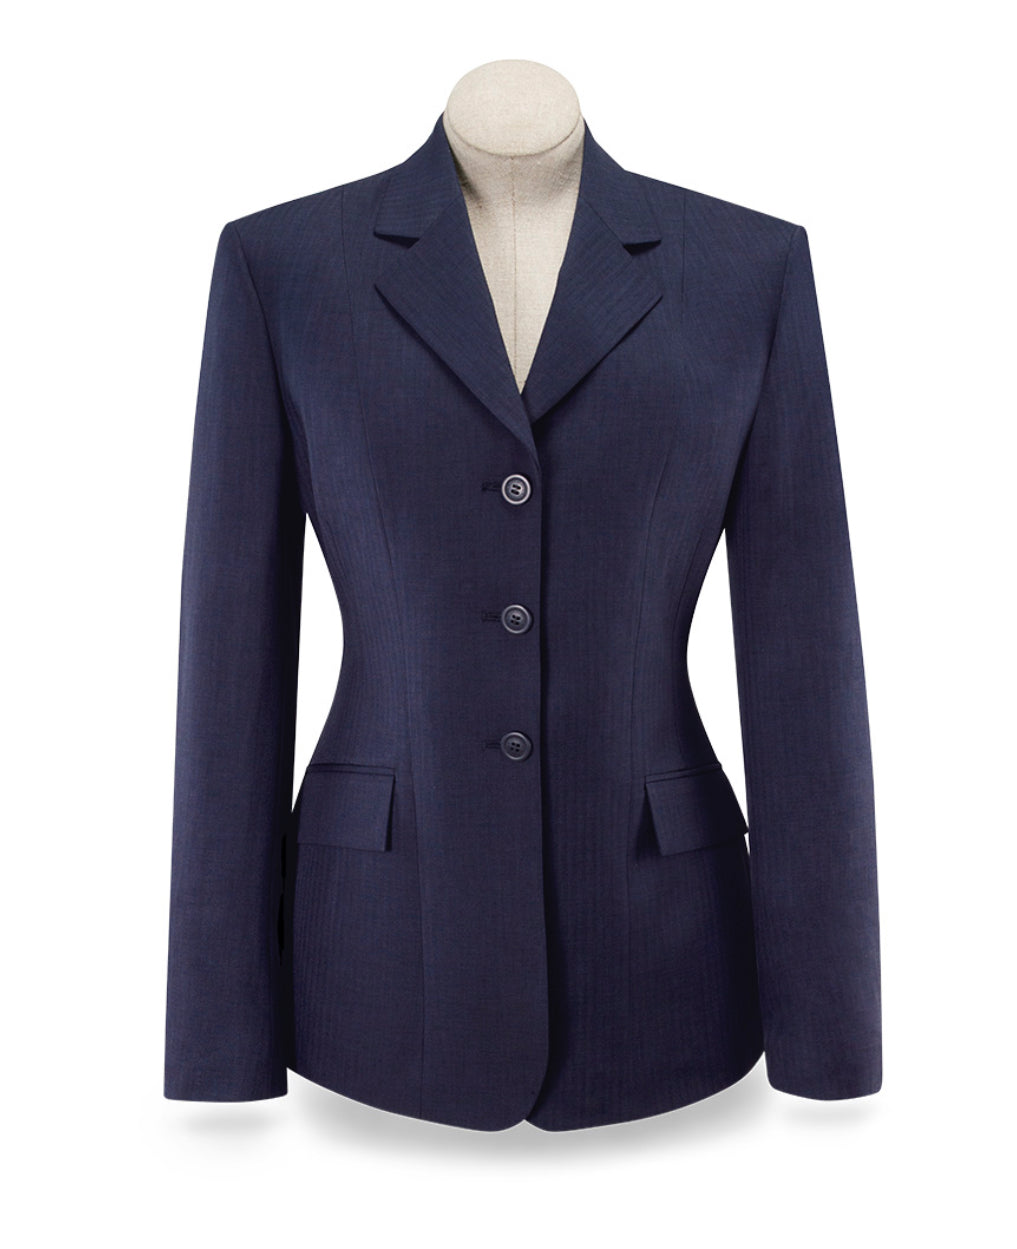 RJ Classics Devon Show Coat - Navy Blue